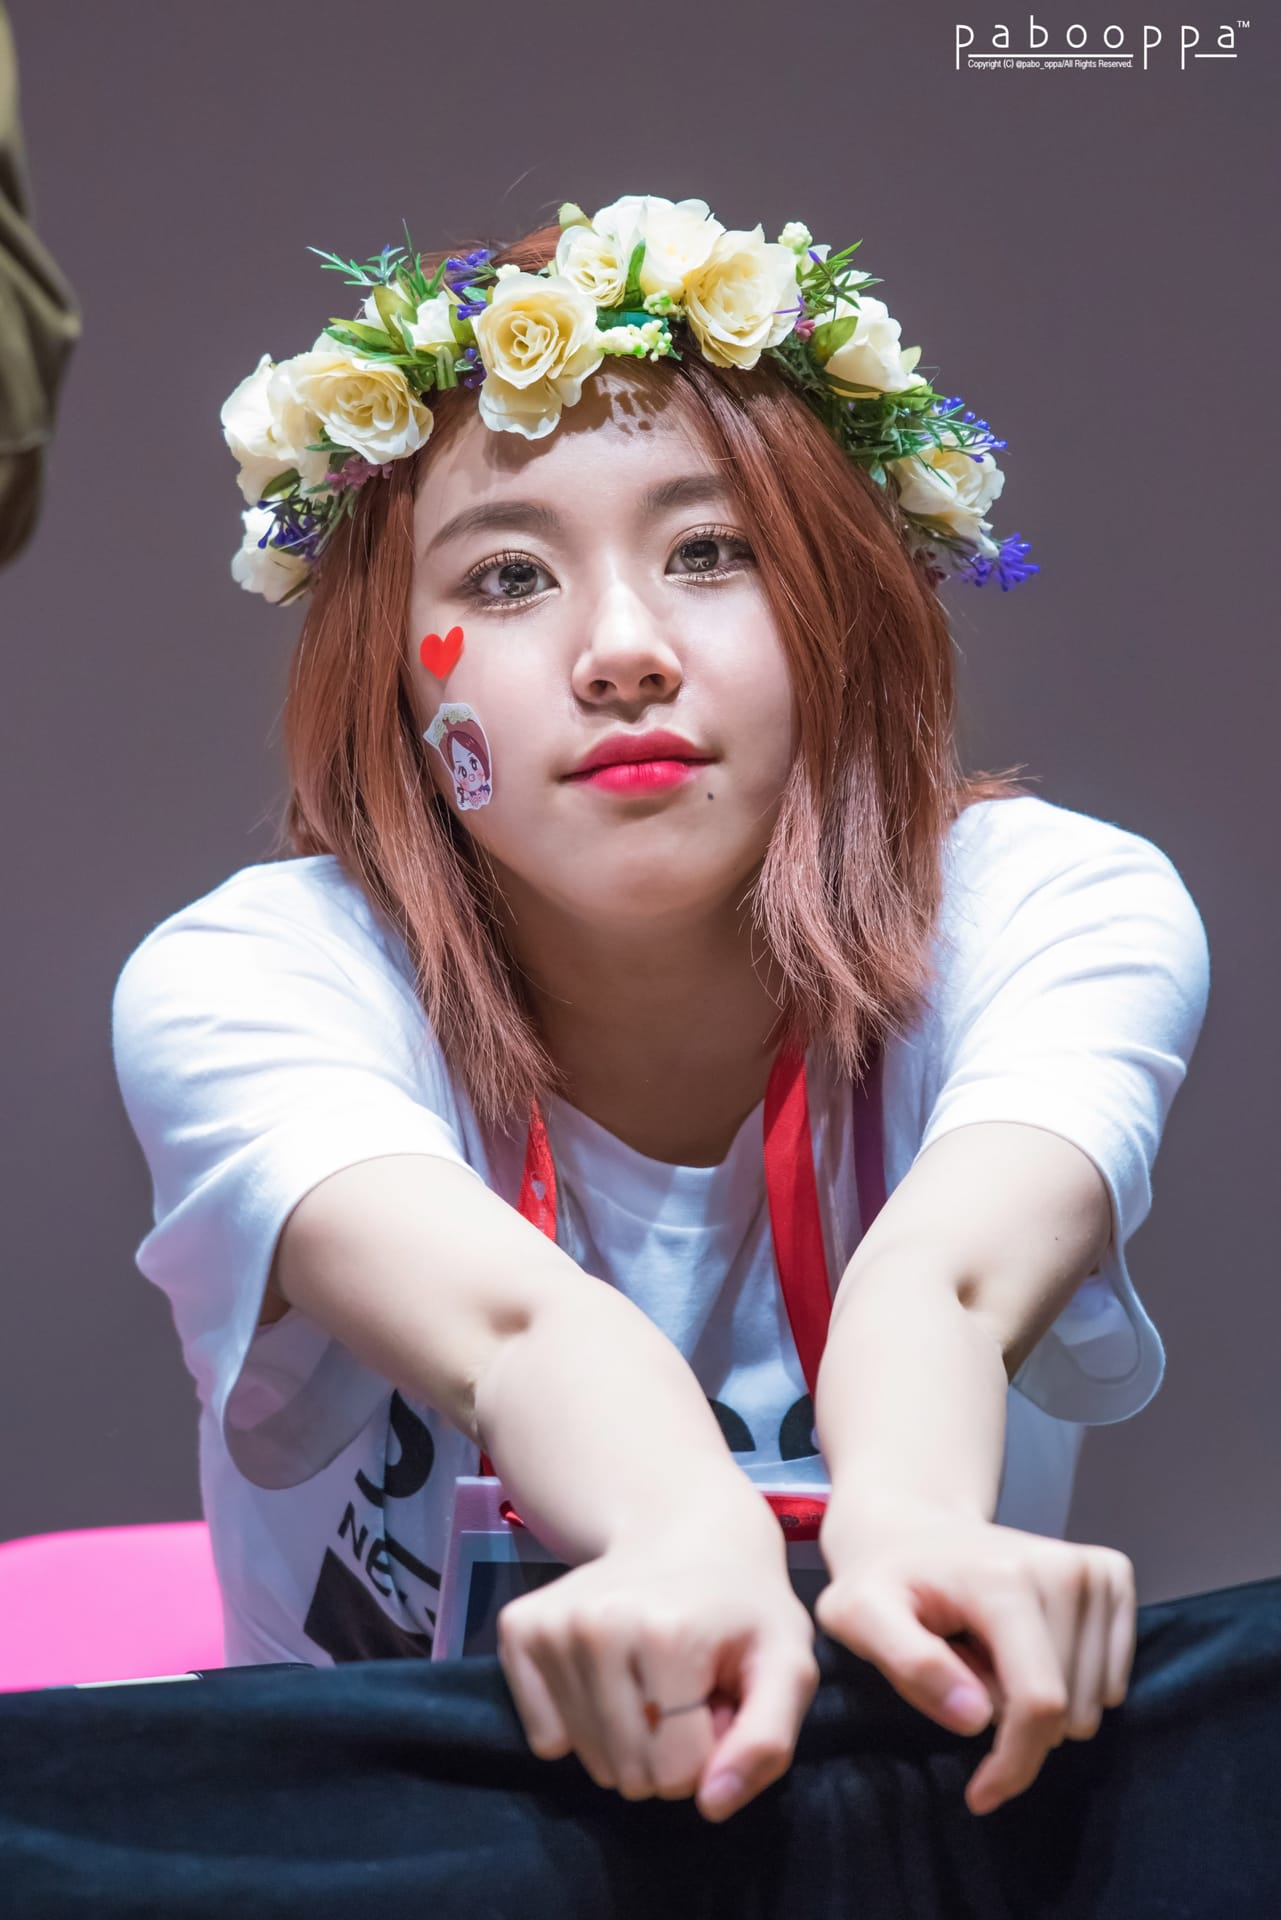 Images guess the k pop idol with a flower crown quiz by pekyy98 images guess the k pop idol with a flower crown quiz by pekyy98 izmirmasajfo